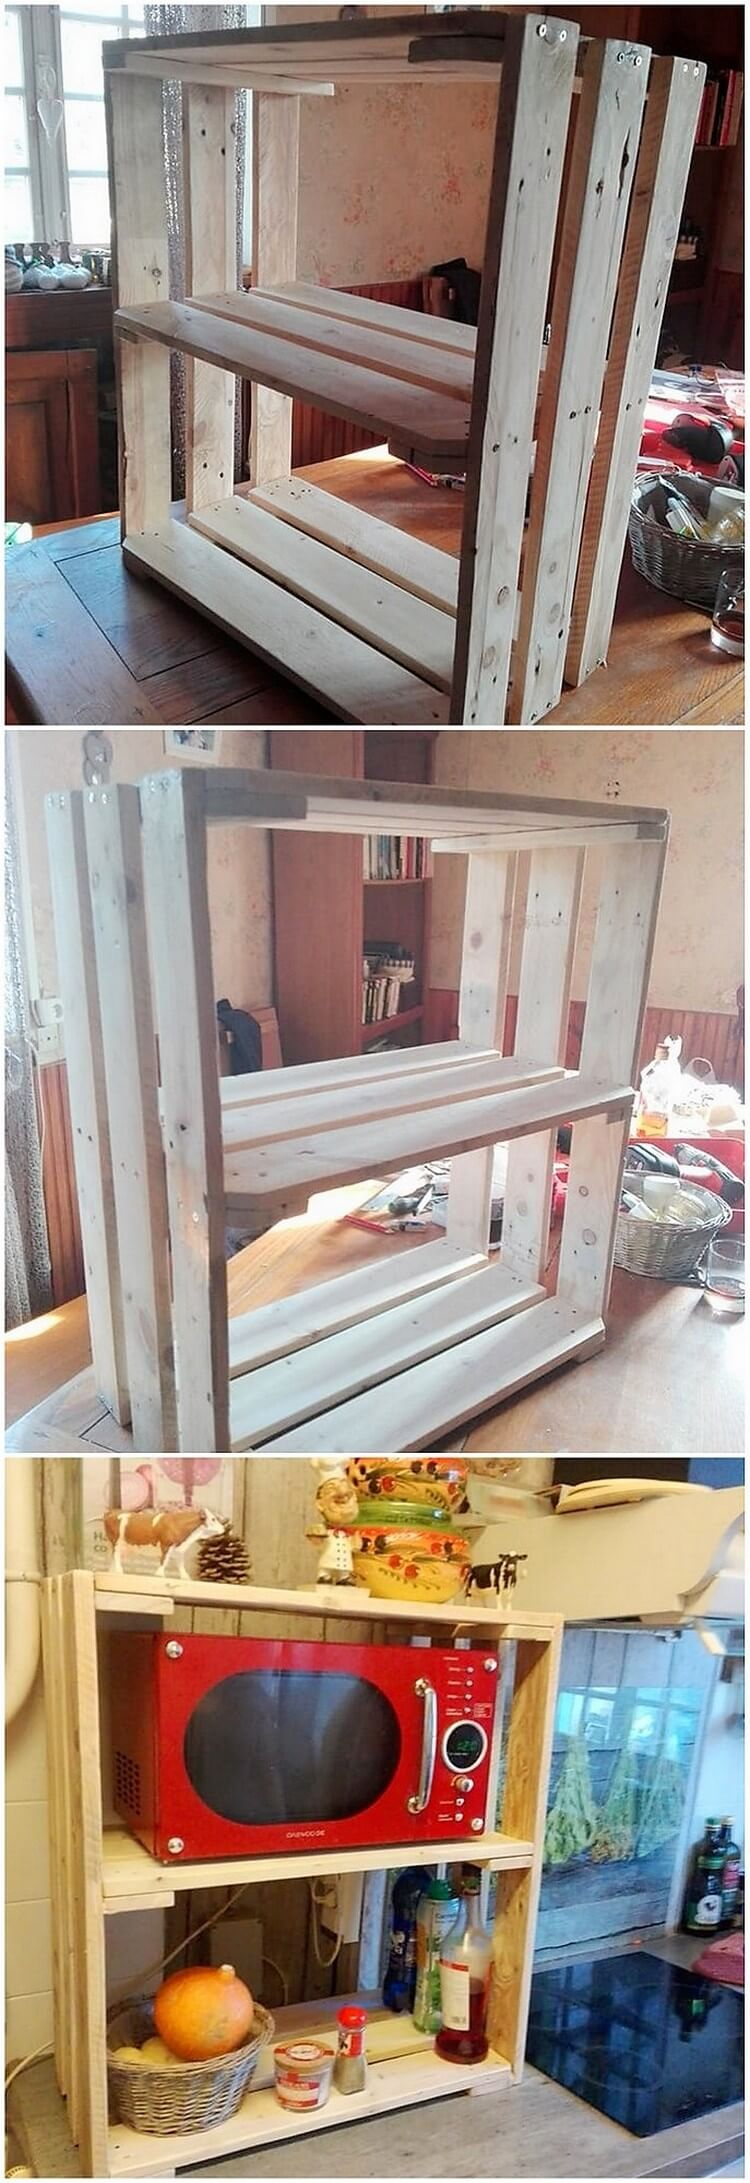 Pallet Oven Rack or Stand